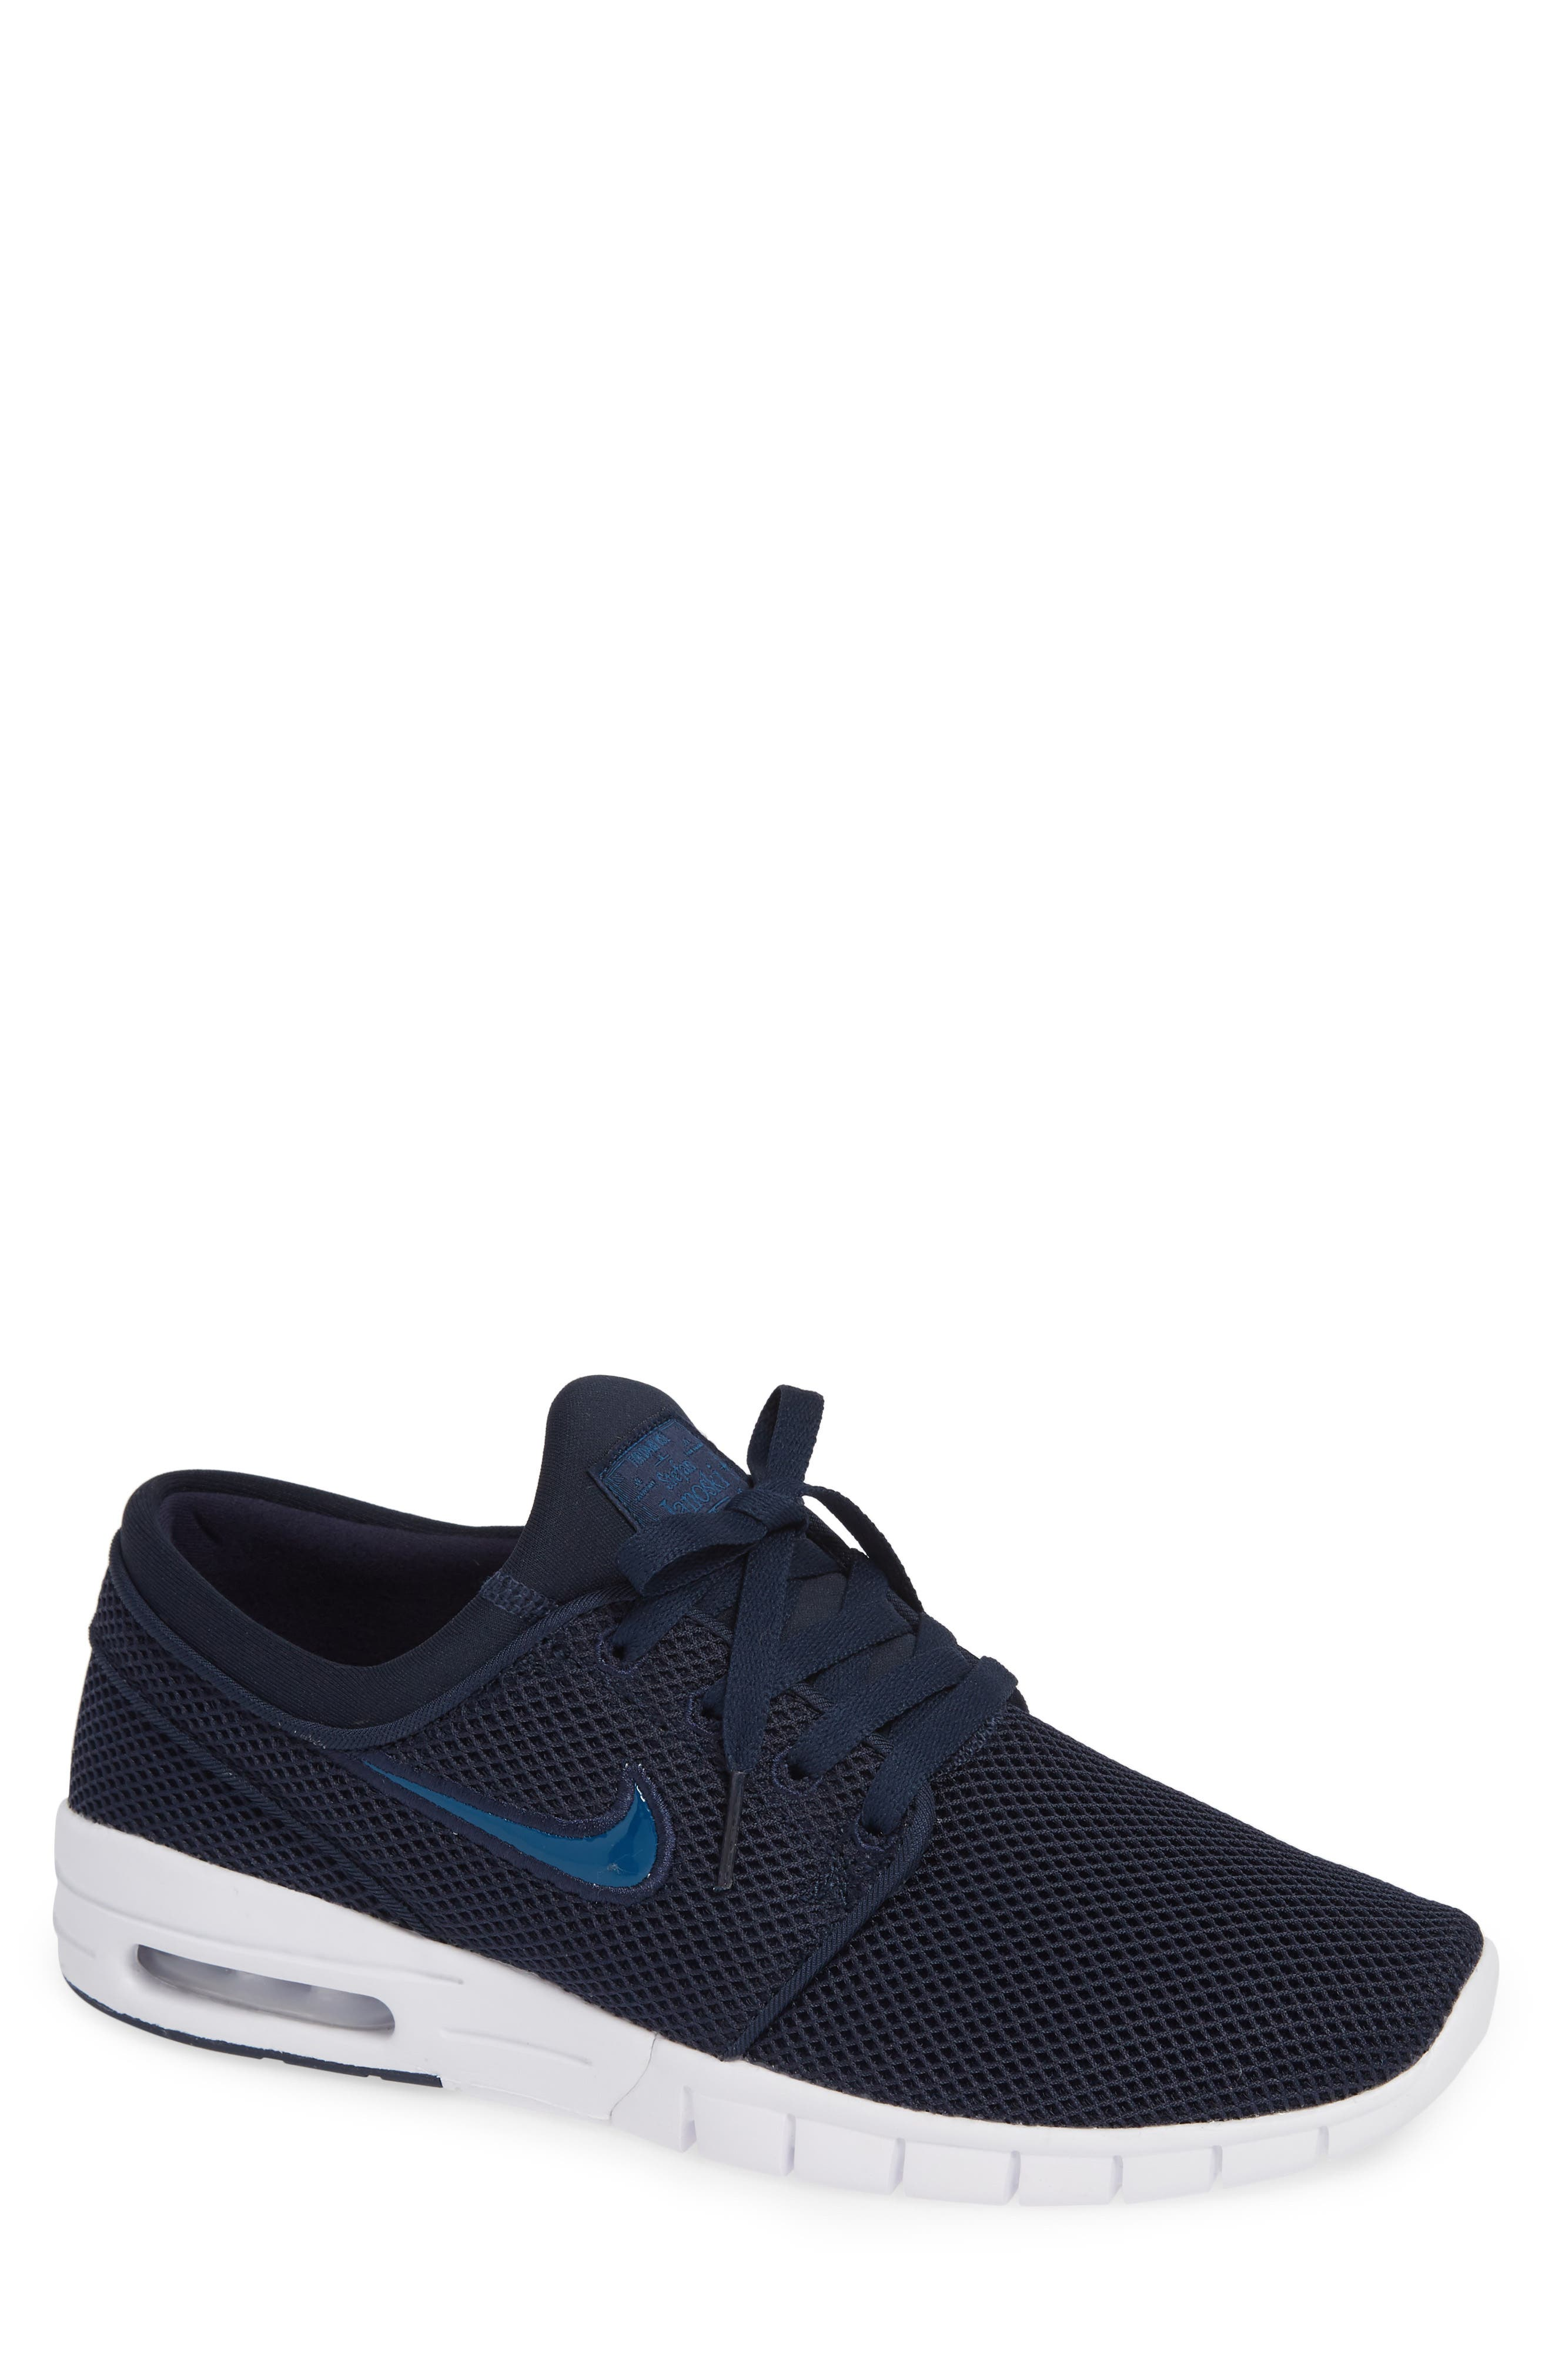 'Stefan Janoski - Max SB' Skate Shoe,                             Main thumbnail 1, color,                             407